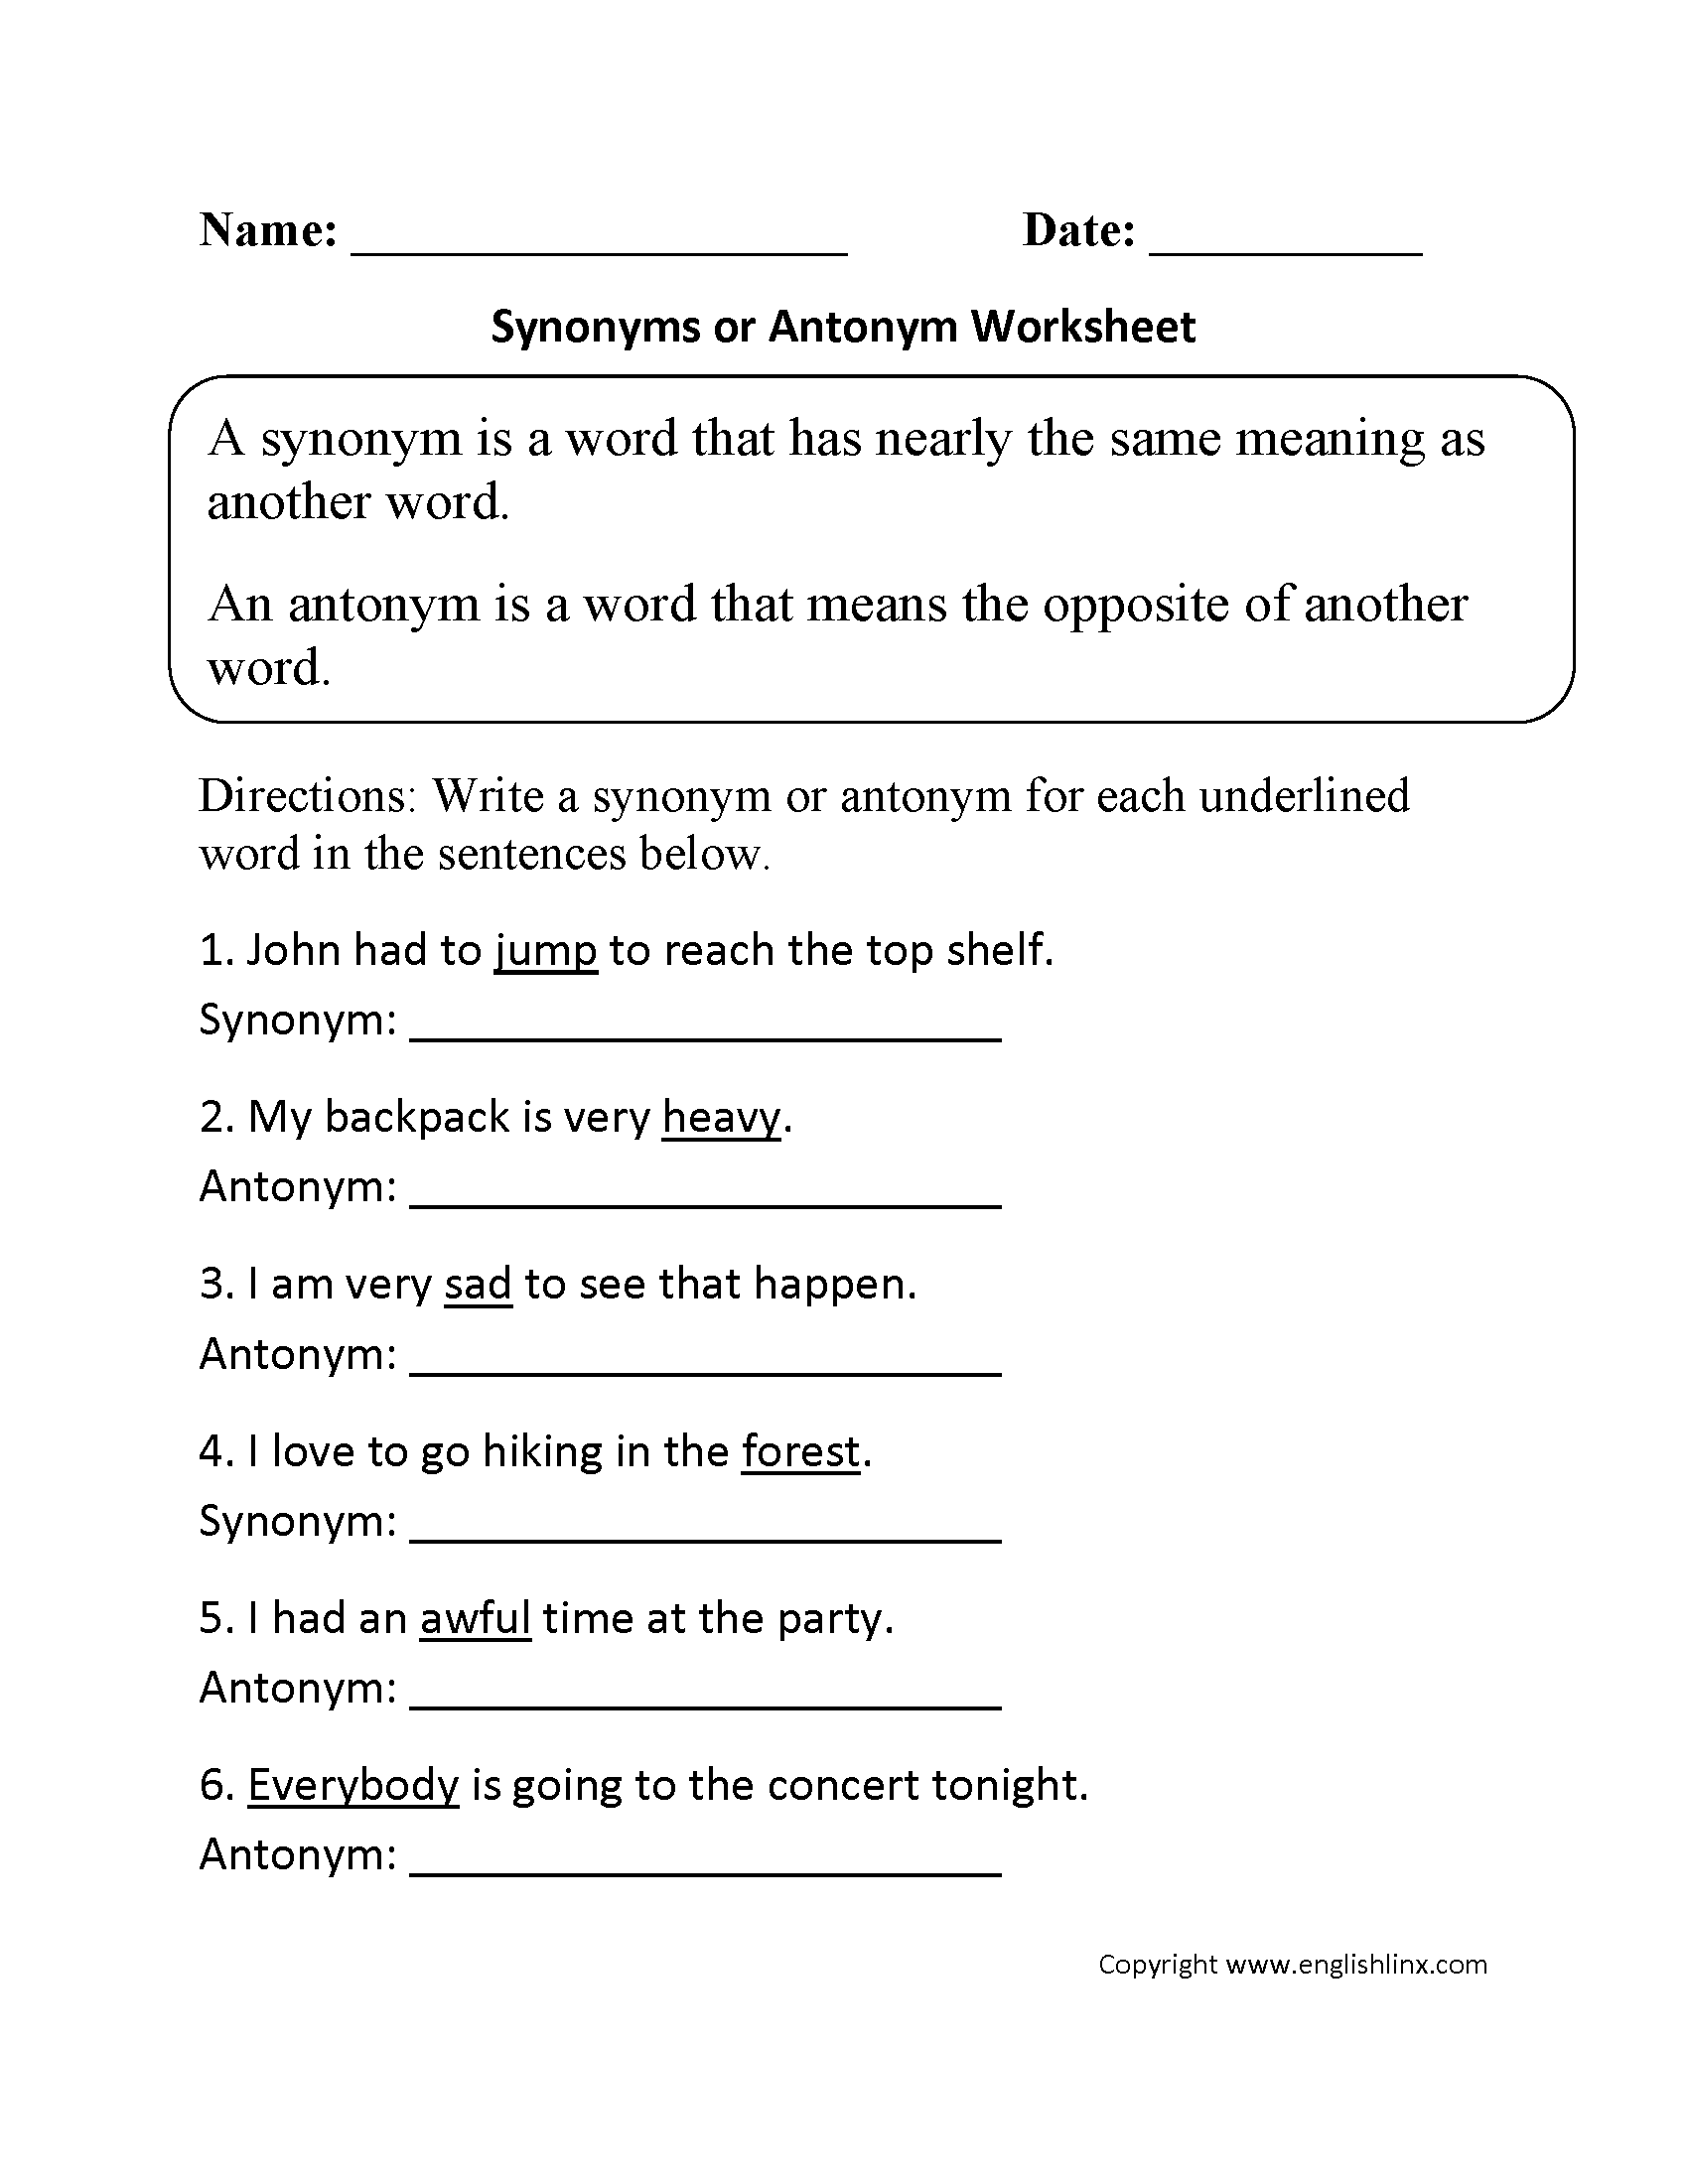 Love One Another Worksheet